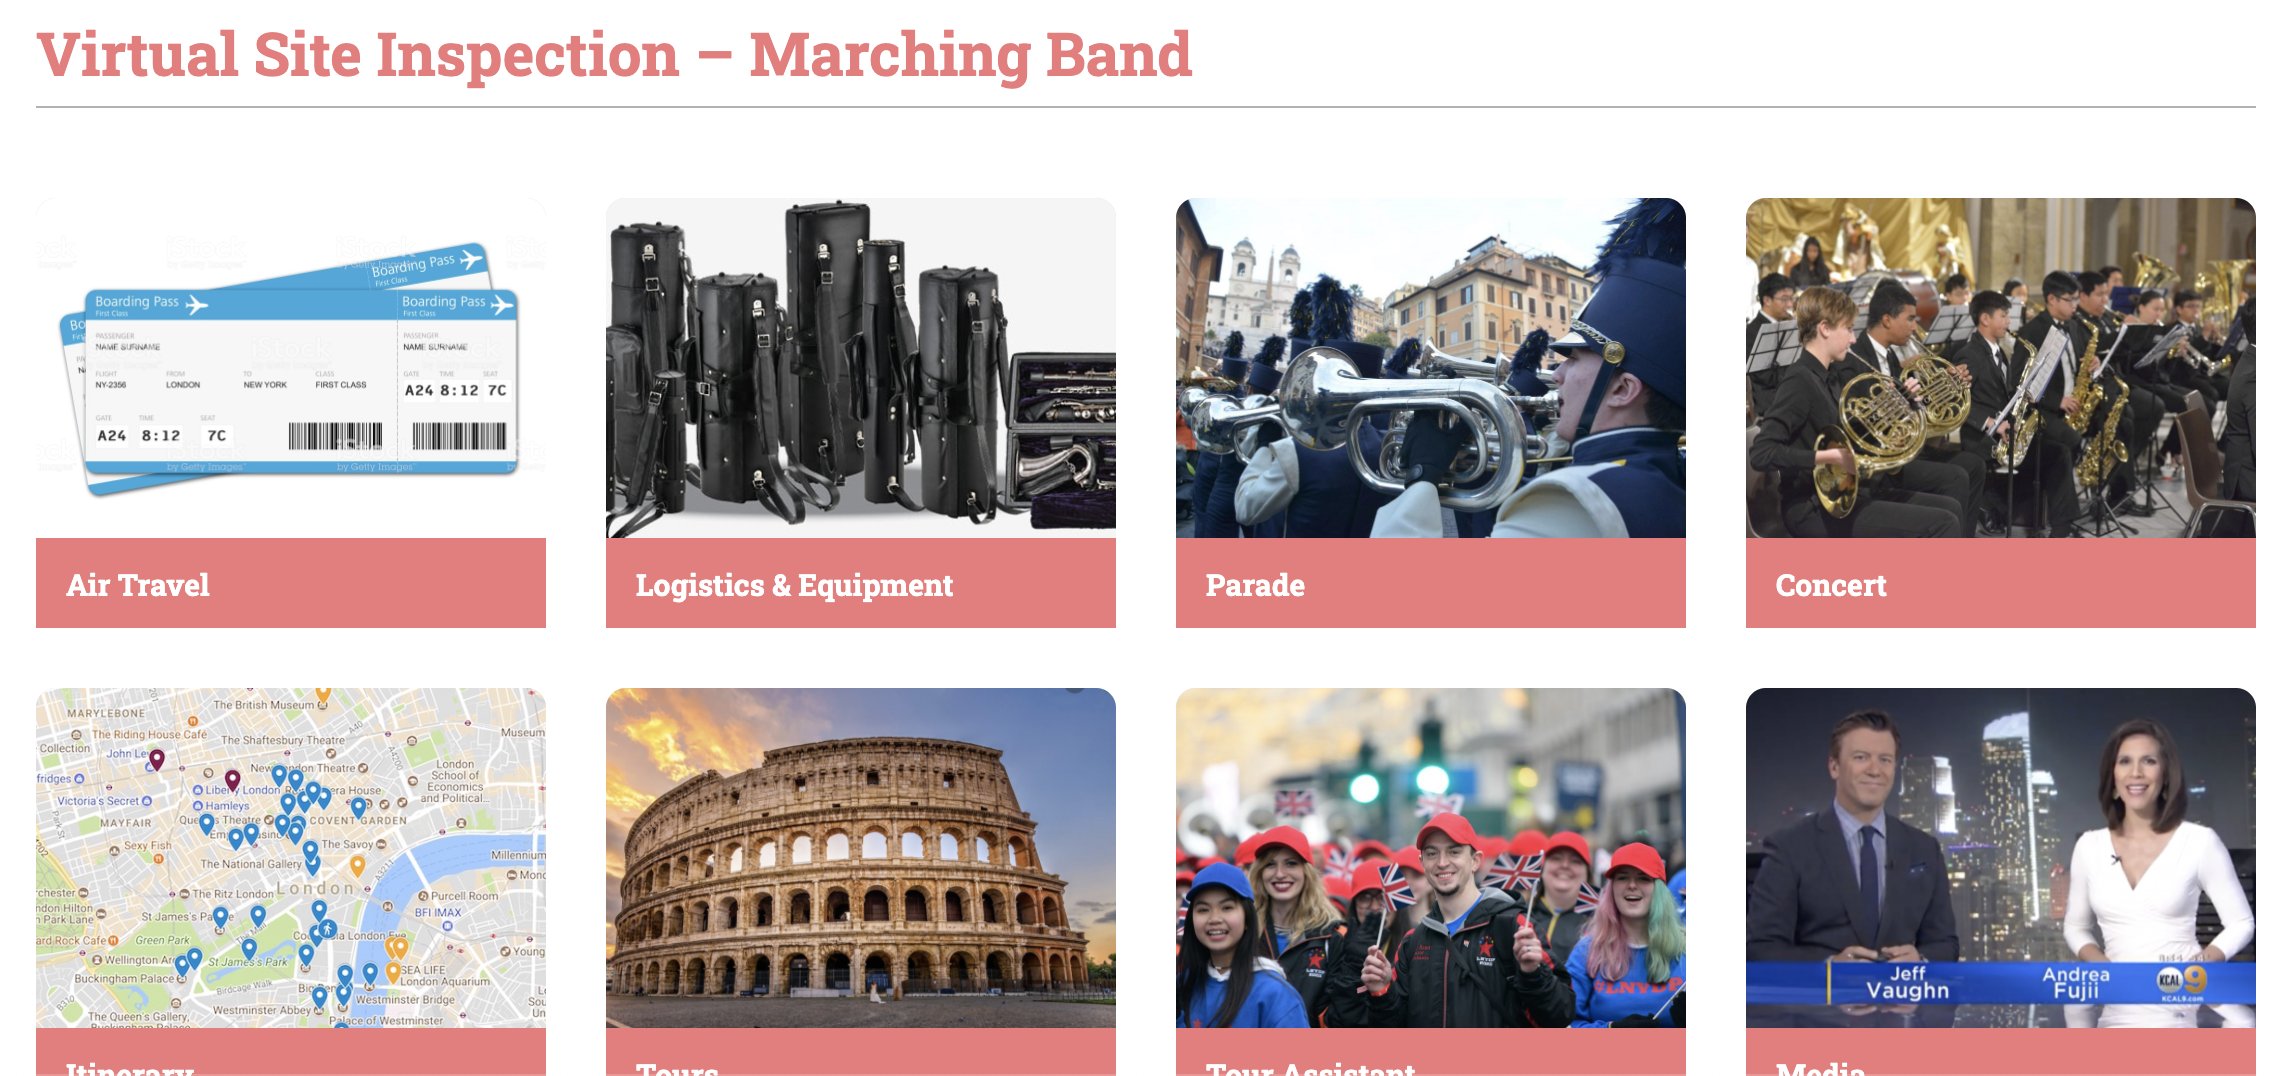 https://romeparade.com/virtual-site-inspection-marching-band/